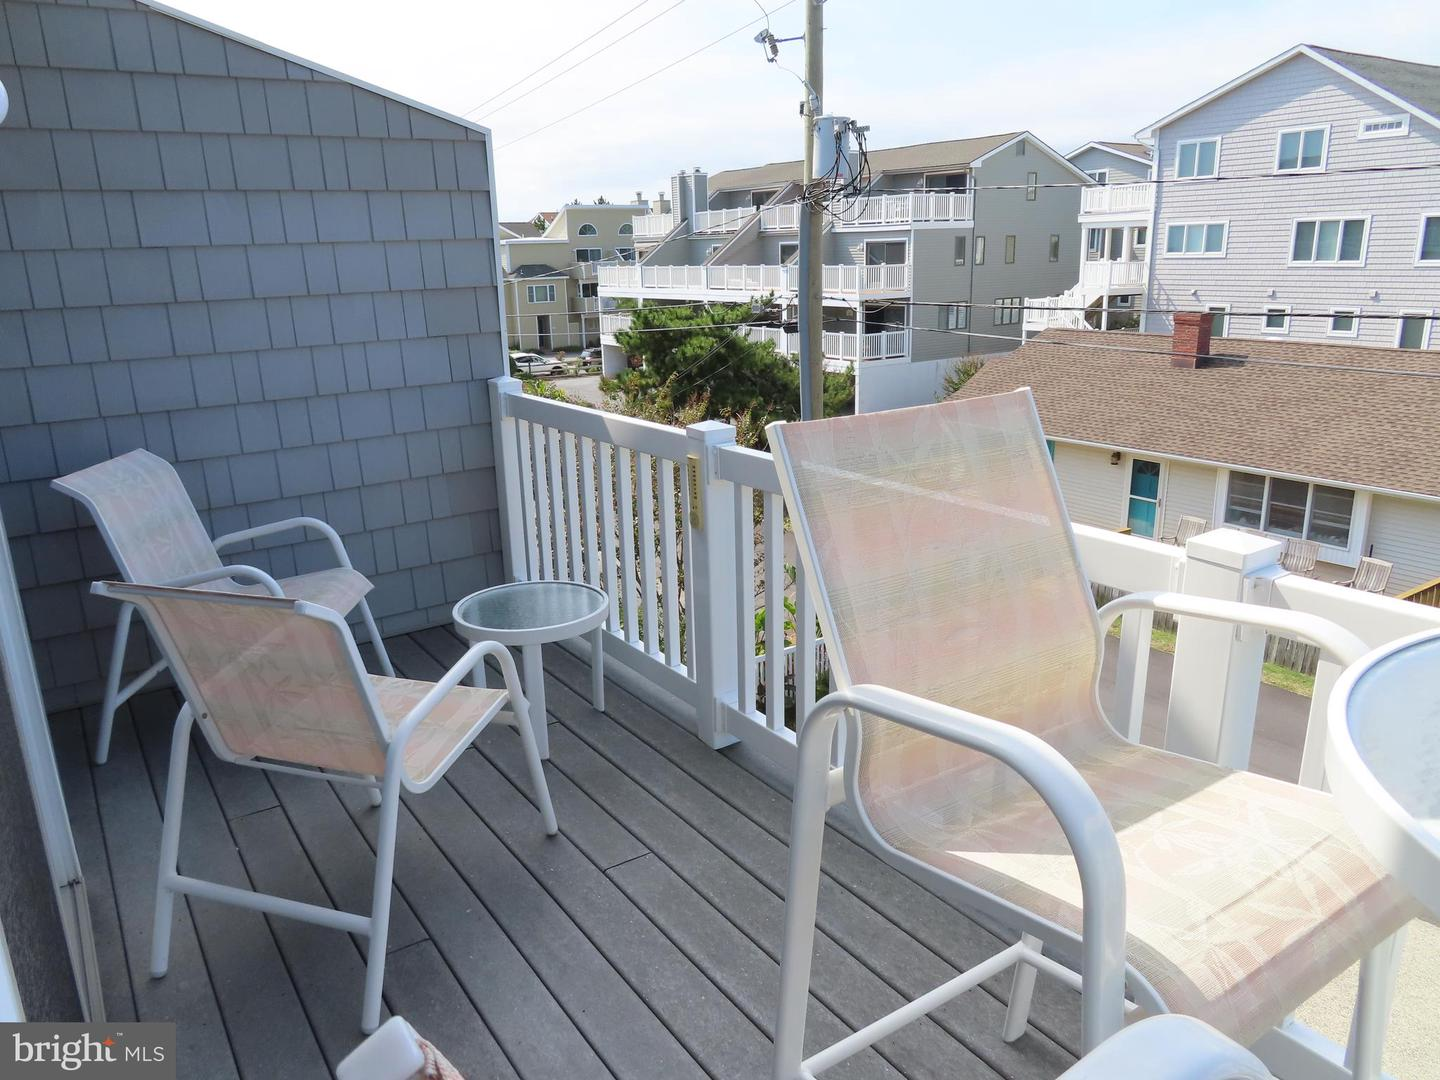 DESU148906-302085632036-2019-09-30-09-08-56 38799 Bunting Ave #1 | Fenwick Island, DE Real Estate For Sale | MLS# Desu148906  - Jack Lingo REALTOR